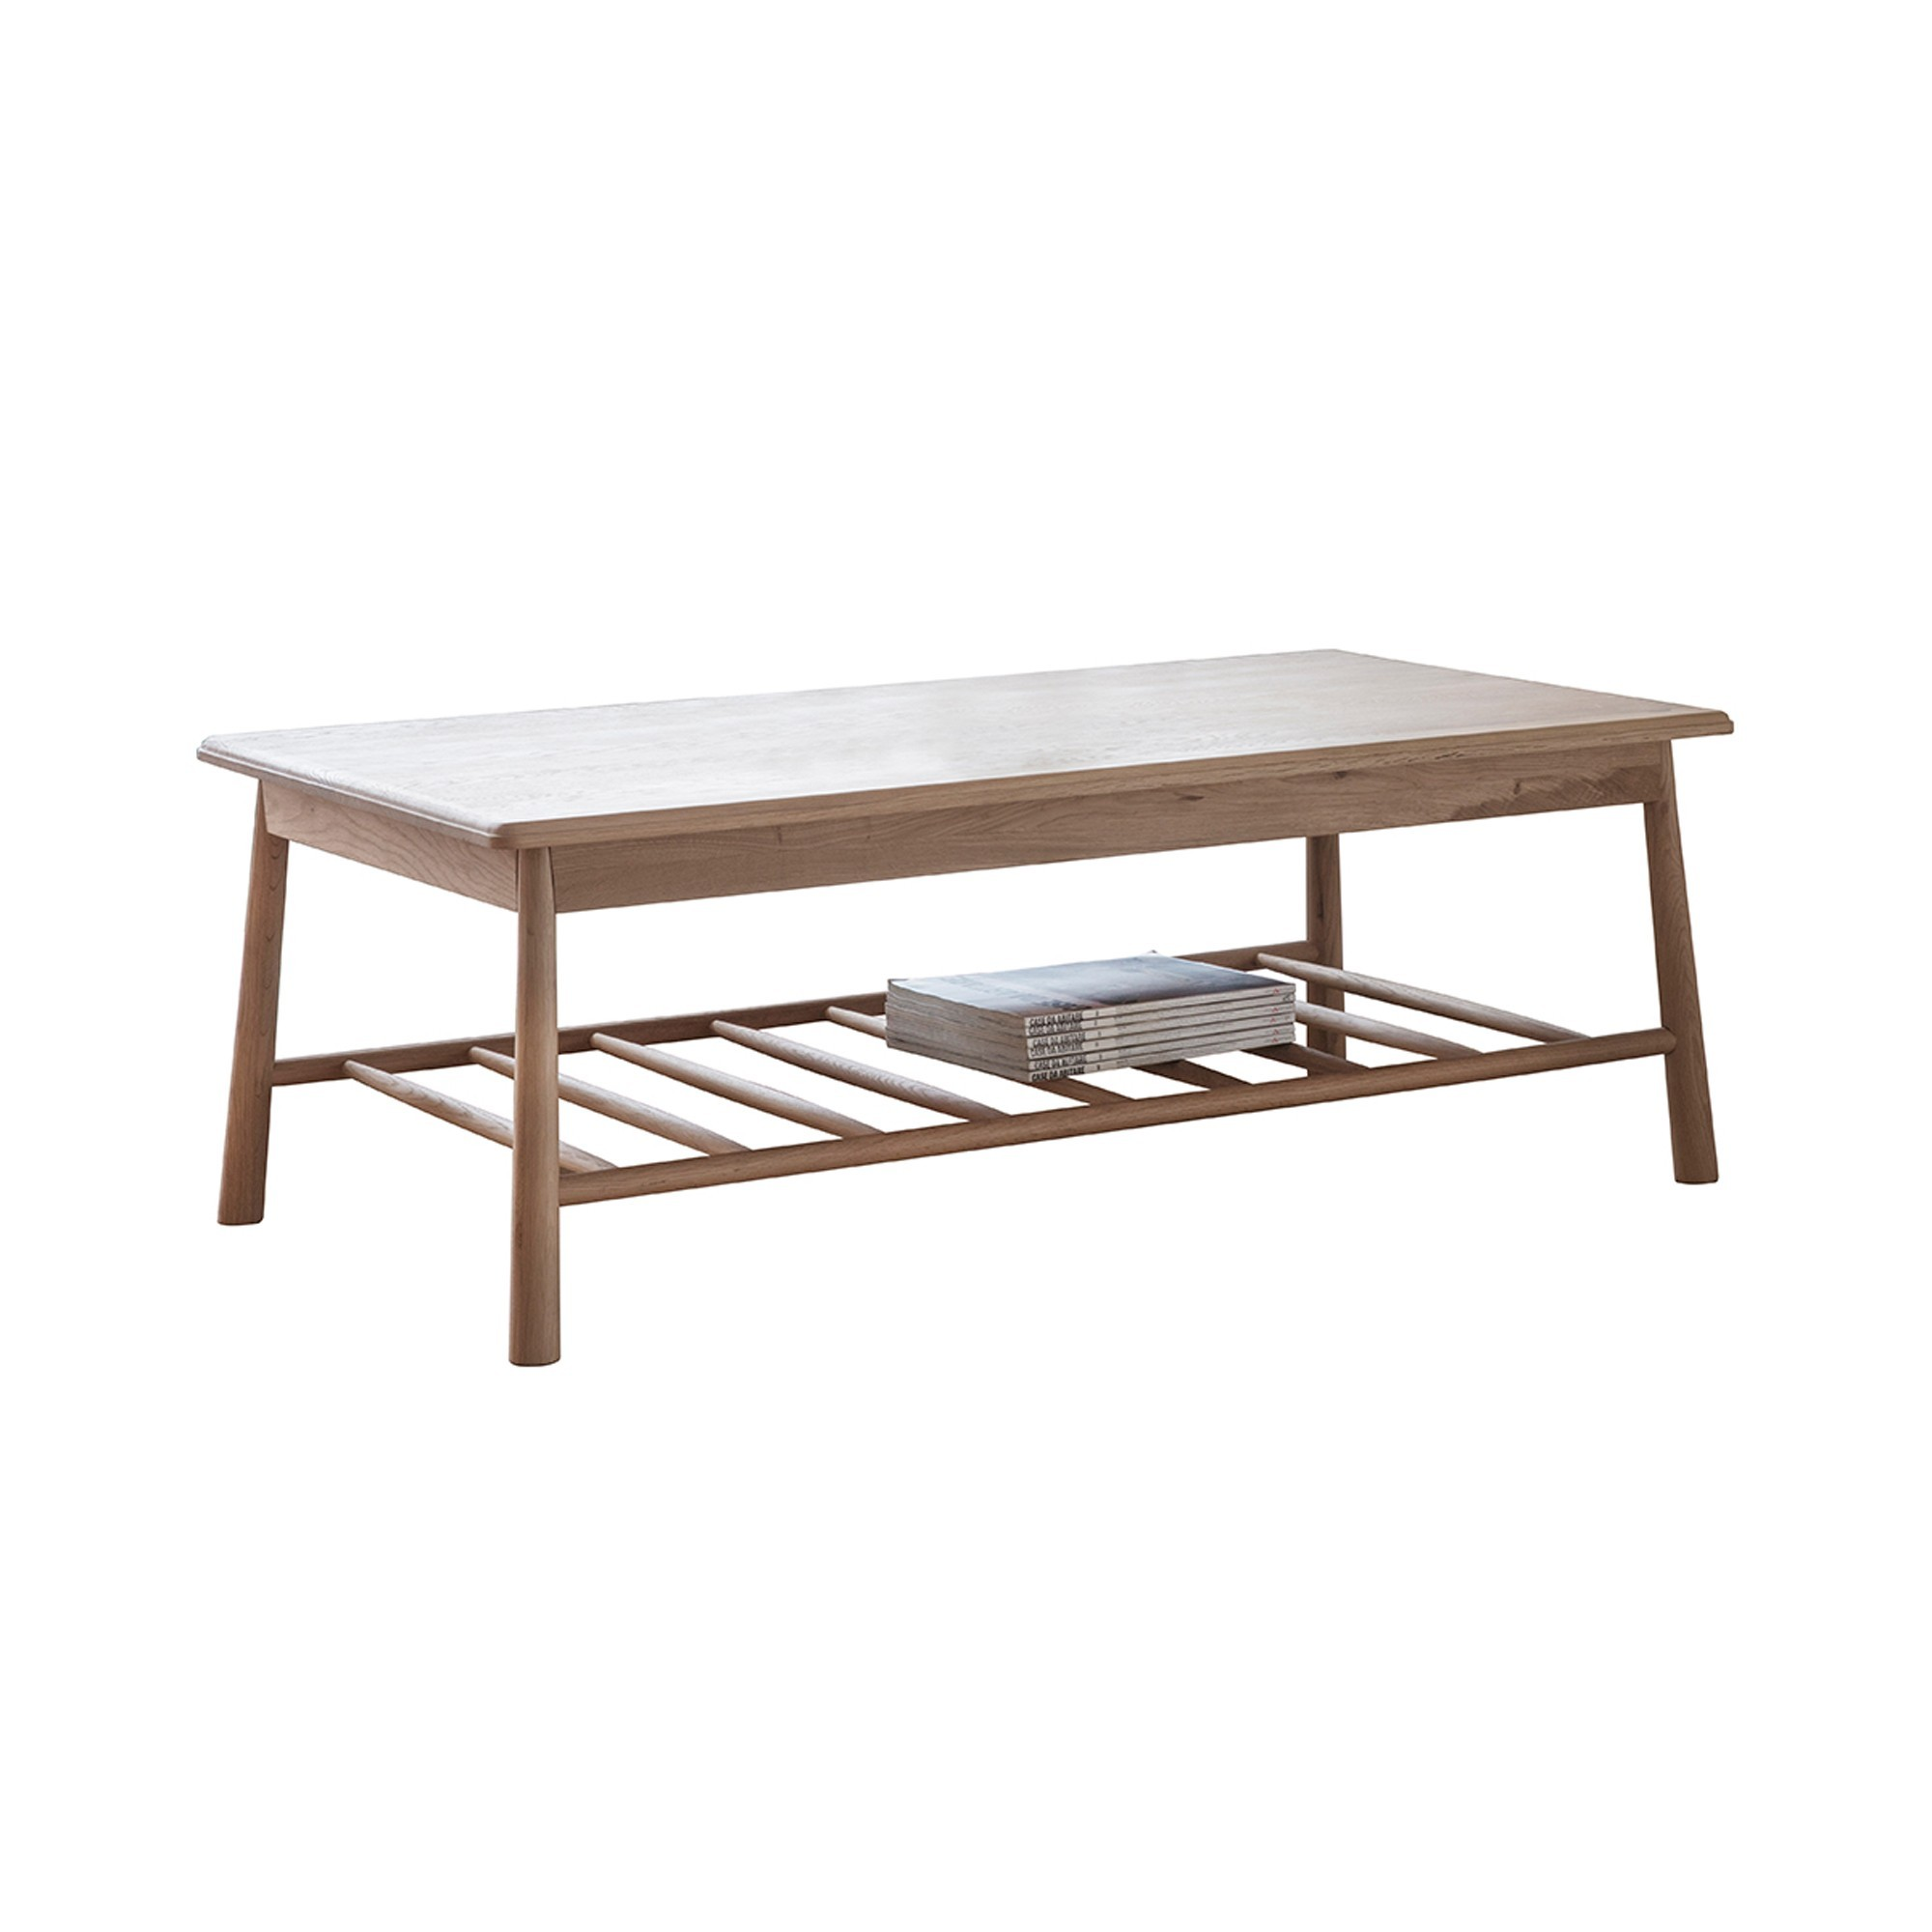 Wycombe Oak Timber Coffee Table, 120cm